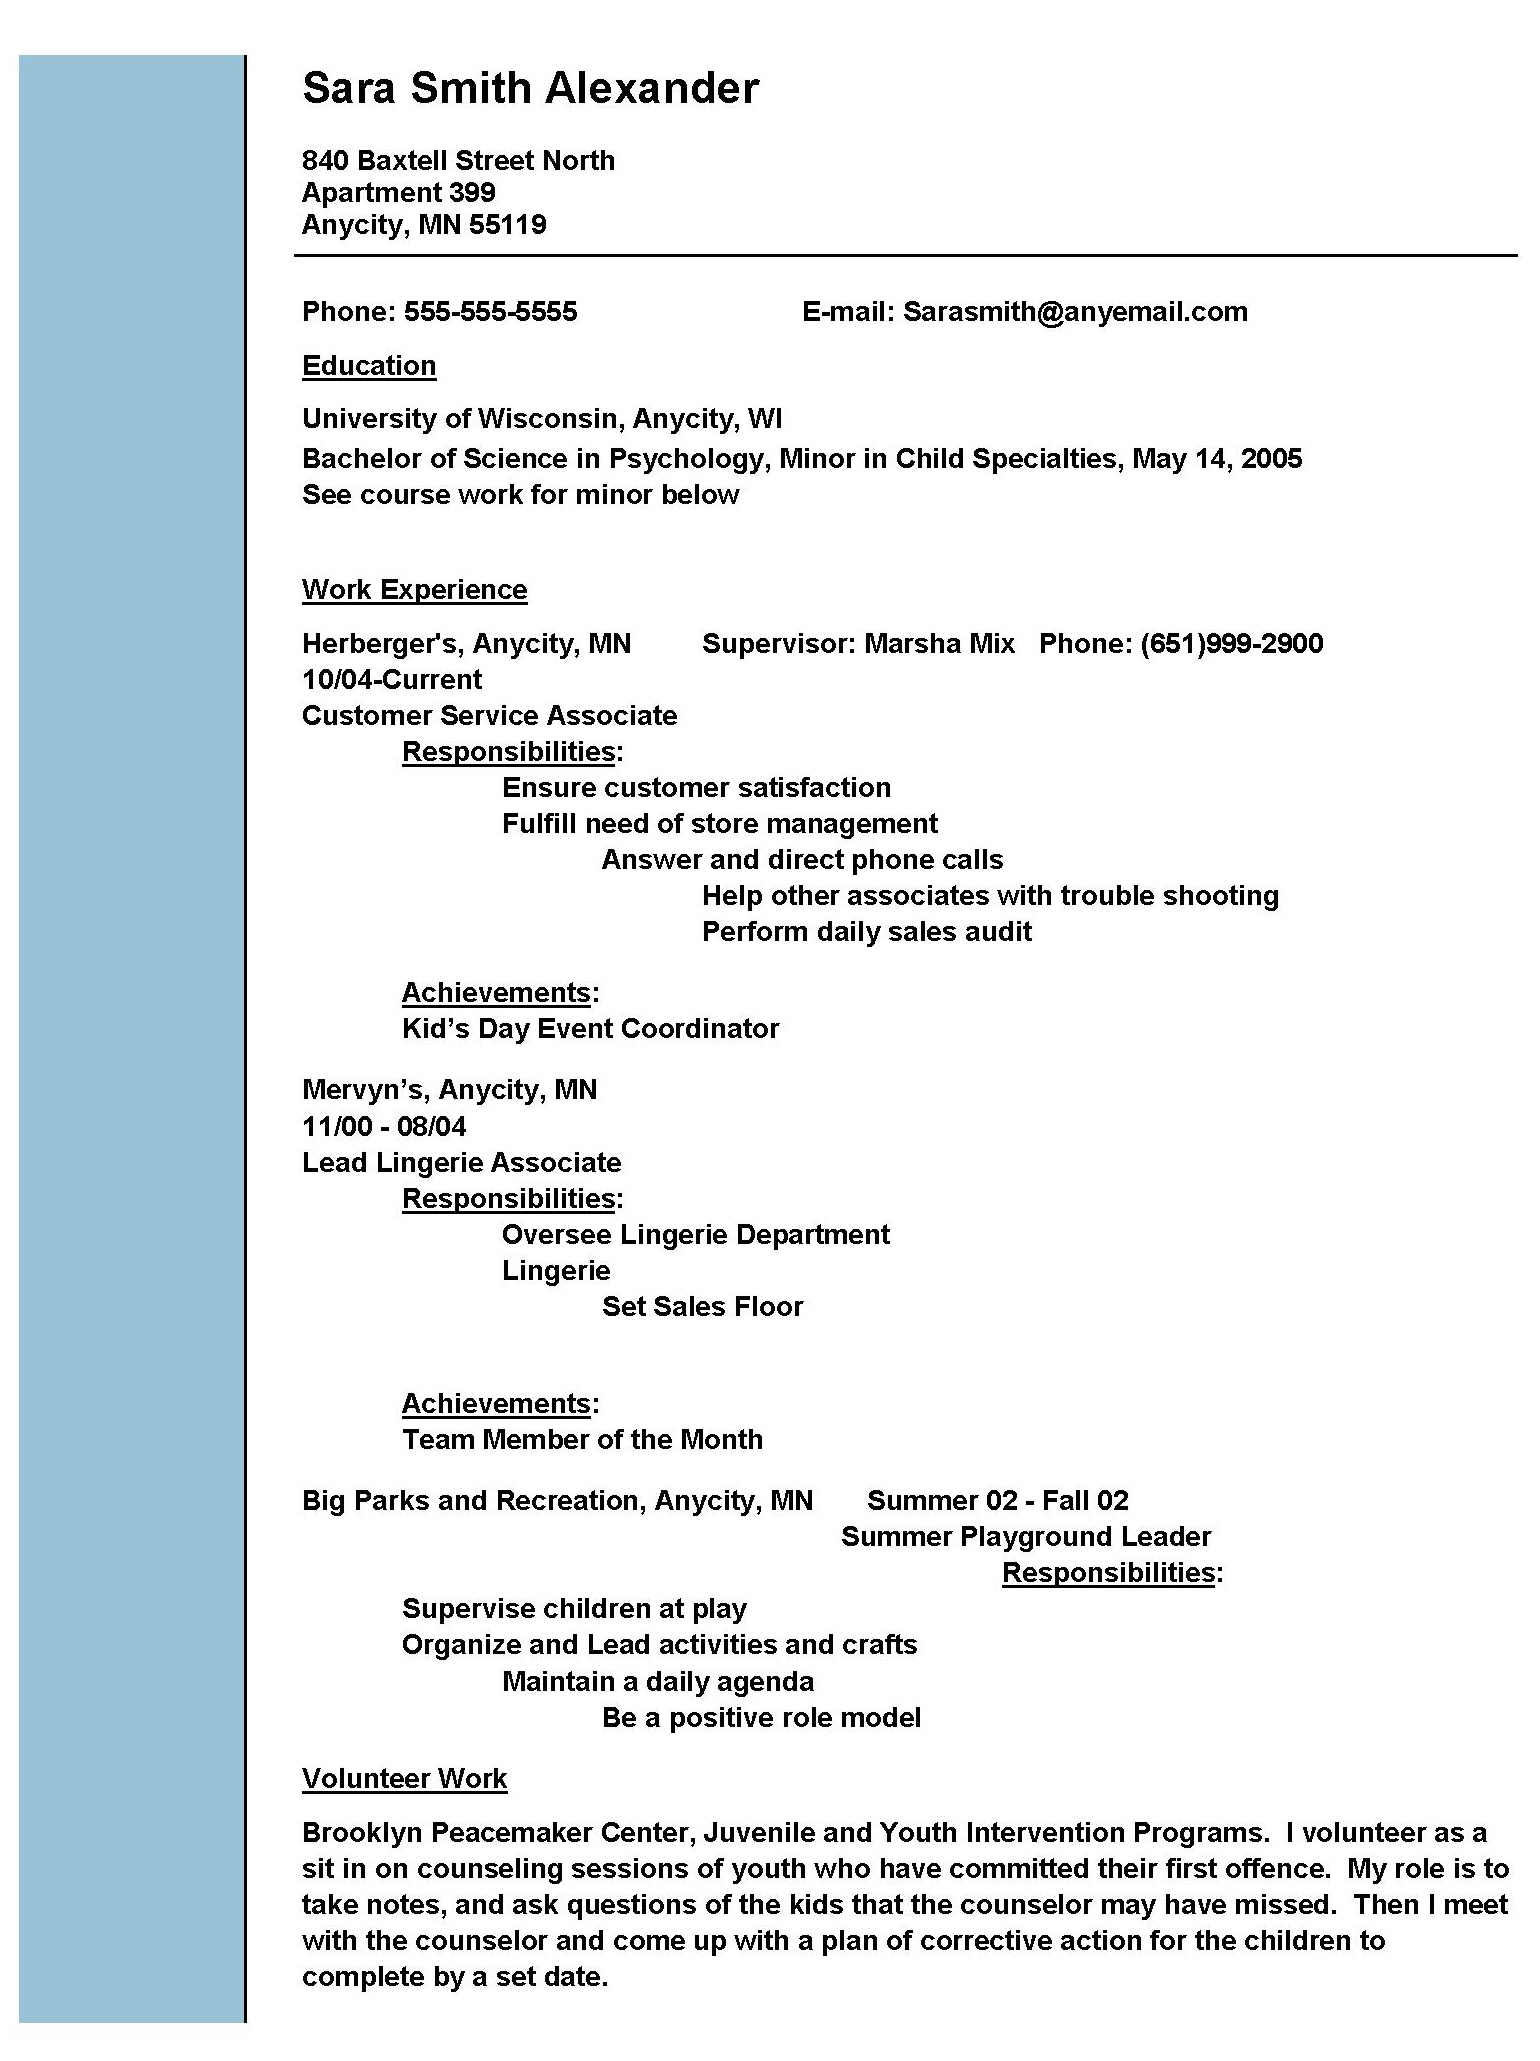 social worker work free sample resumes examples job